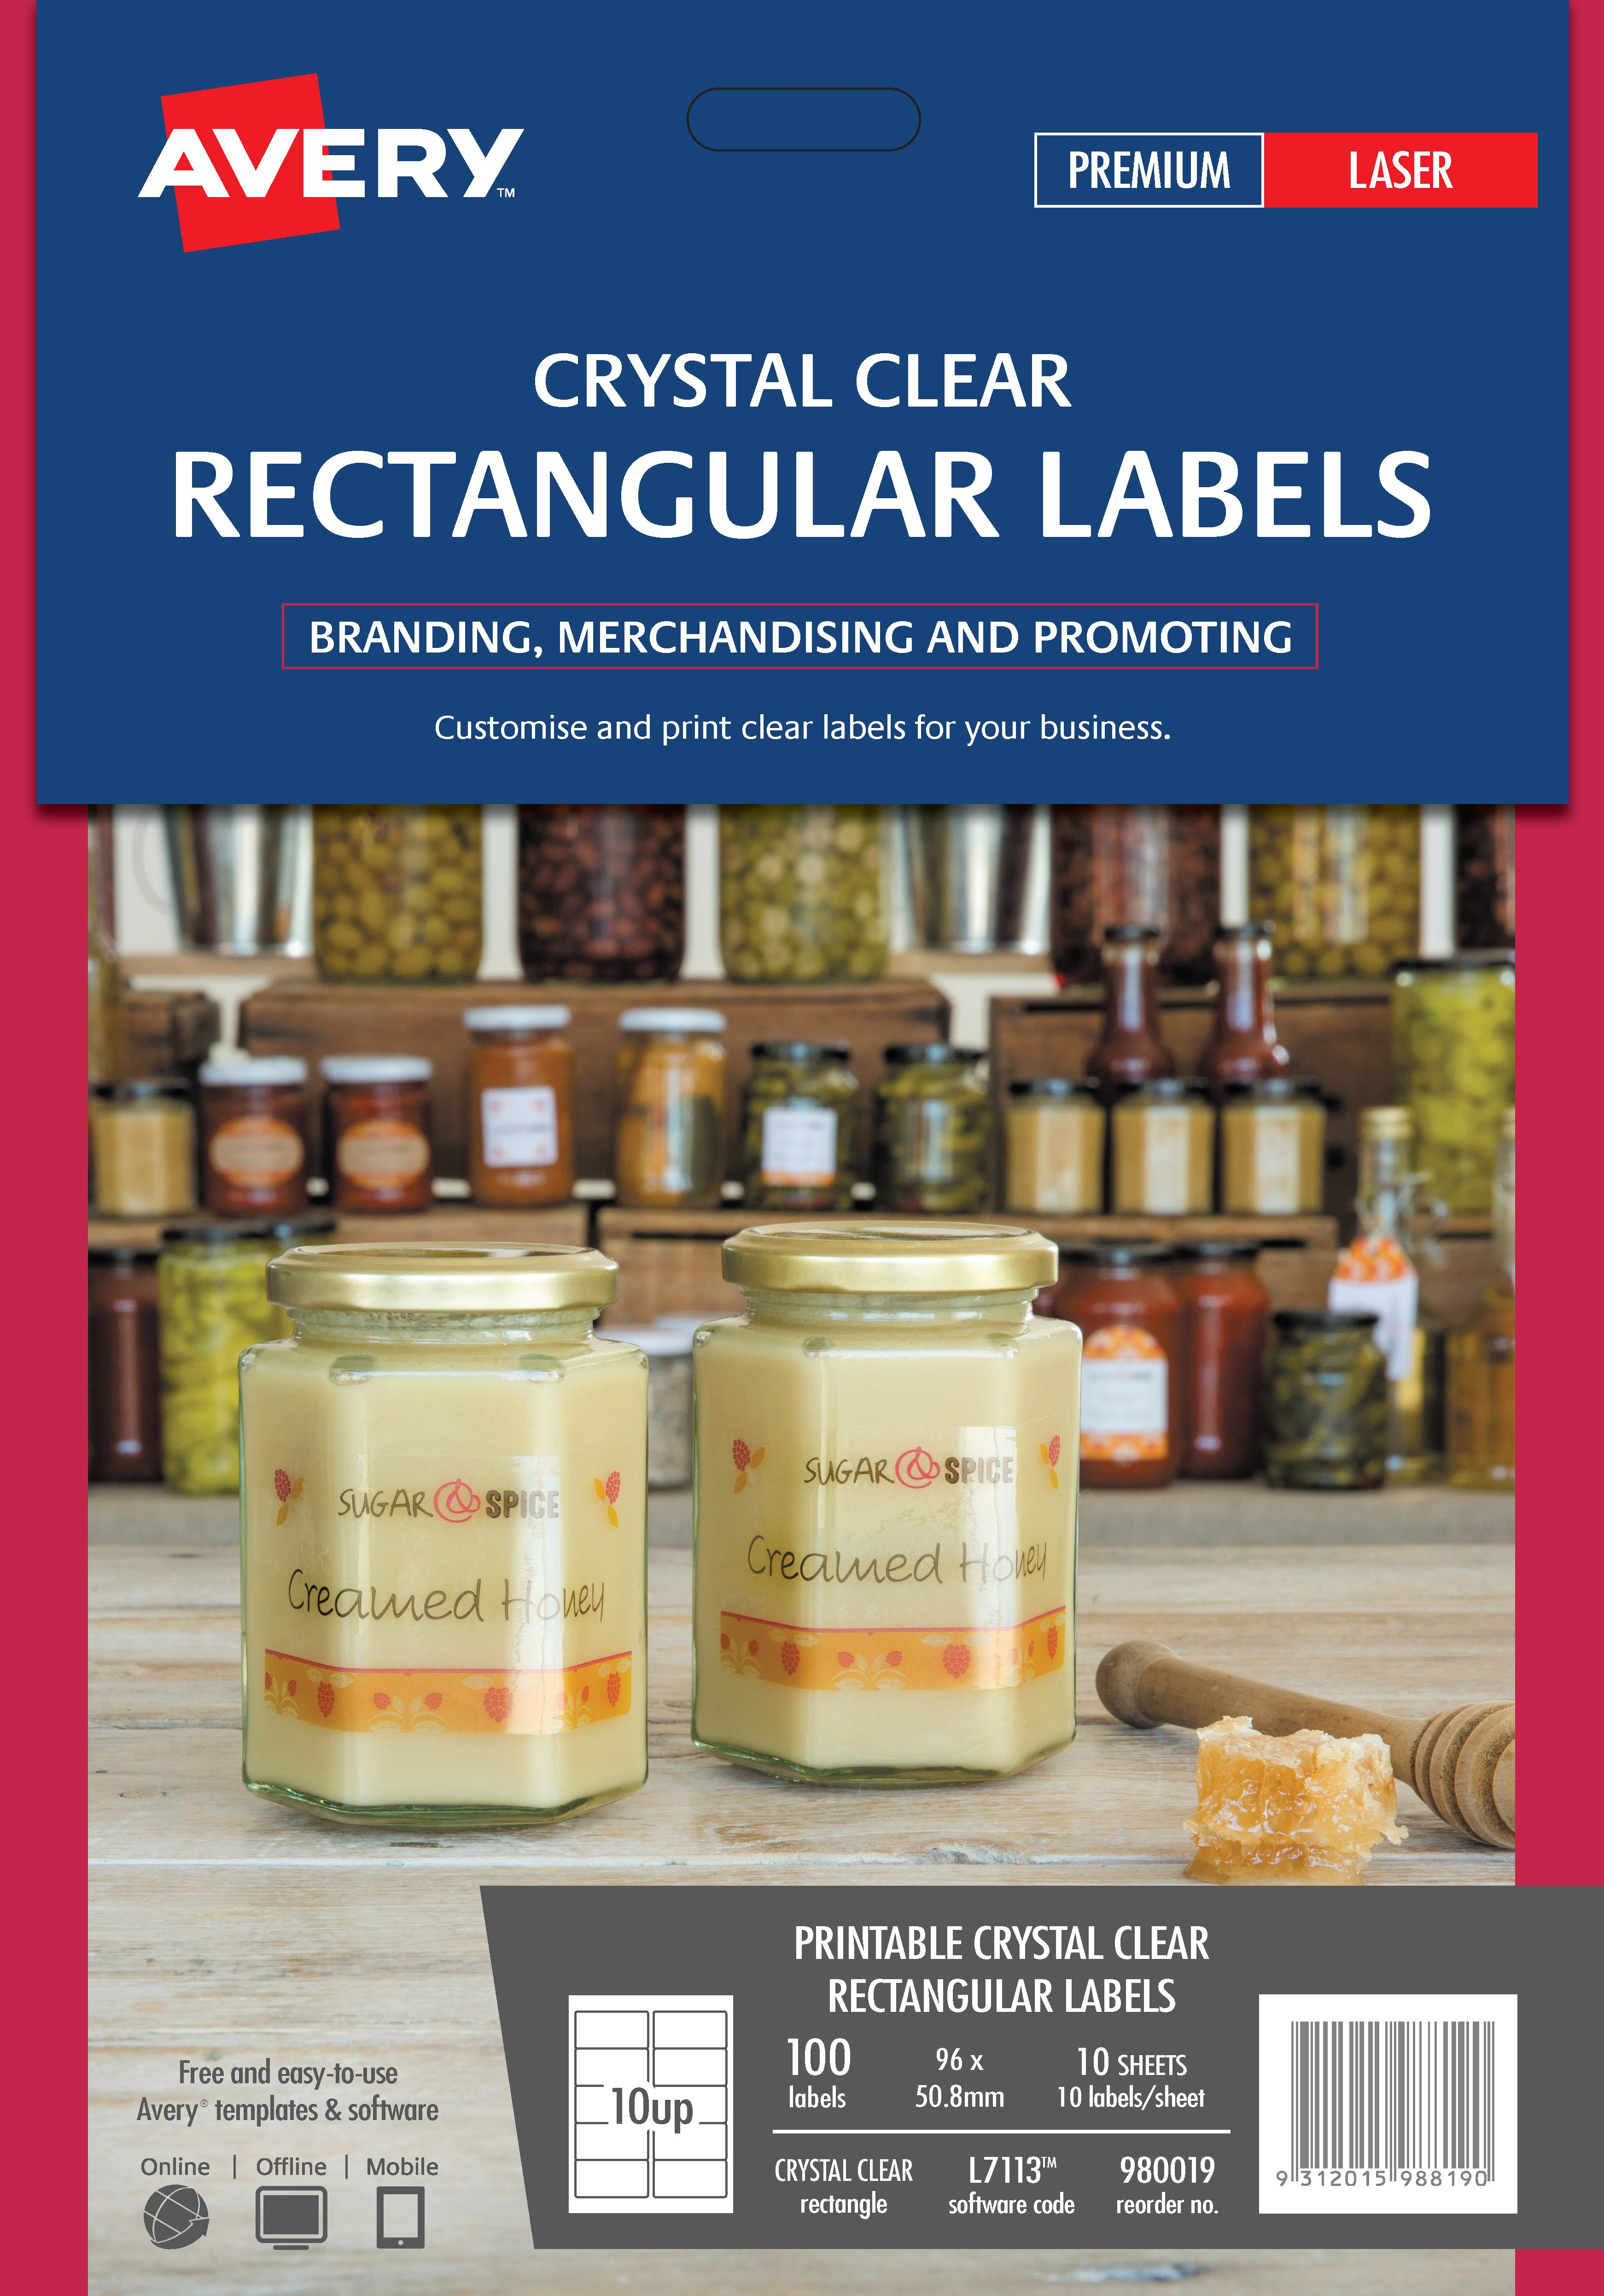 100 x Avery Crystal Clear Rectangular Product Jar Labels